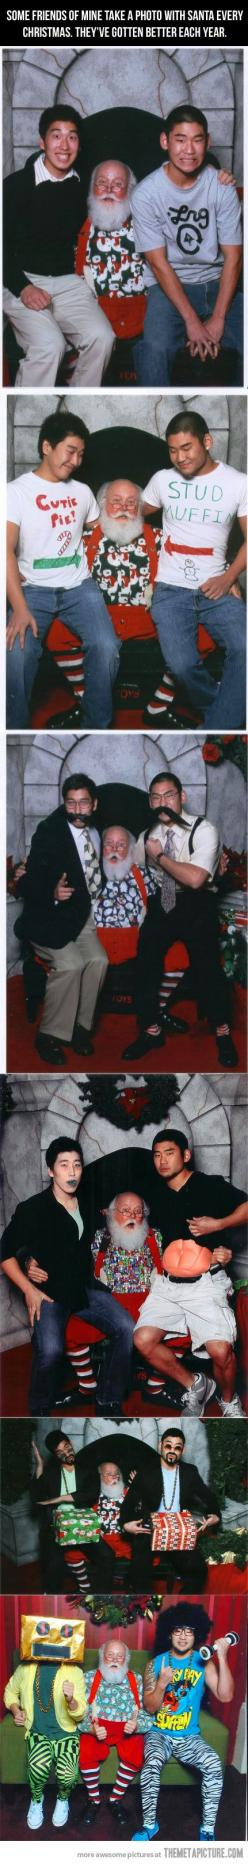 A yearly tradition. . .taking a photo with Santa. Love their creativity- plus I'm pretty sure this is the Santa at Alderwood Mall in Lynnwood, WA!: Santa Hahaha, Santa Awesome, Best Friends, Crazy Photos, Funny Stuff, Santa Pictures, Christmas Photos